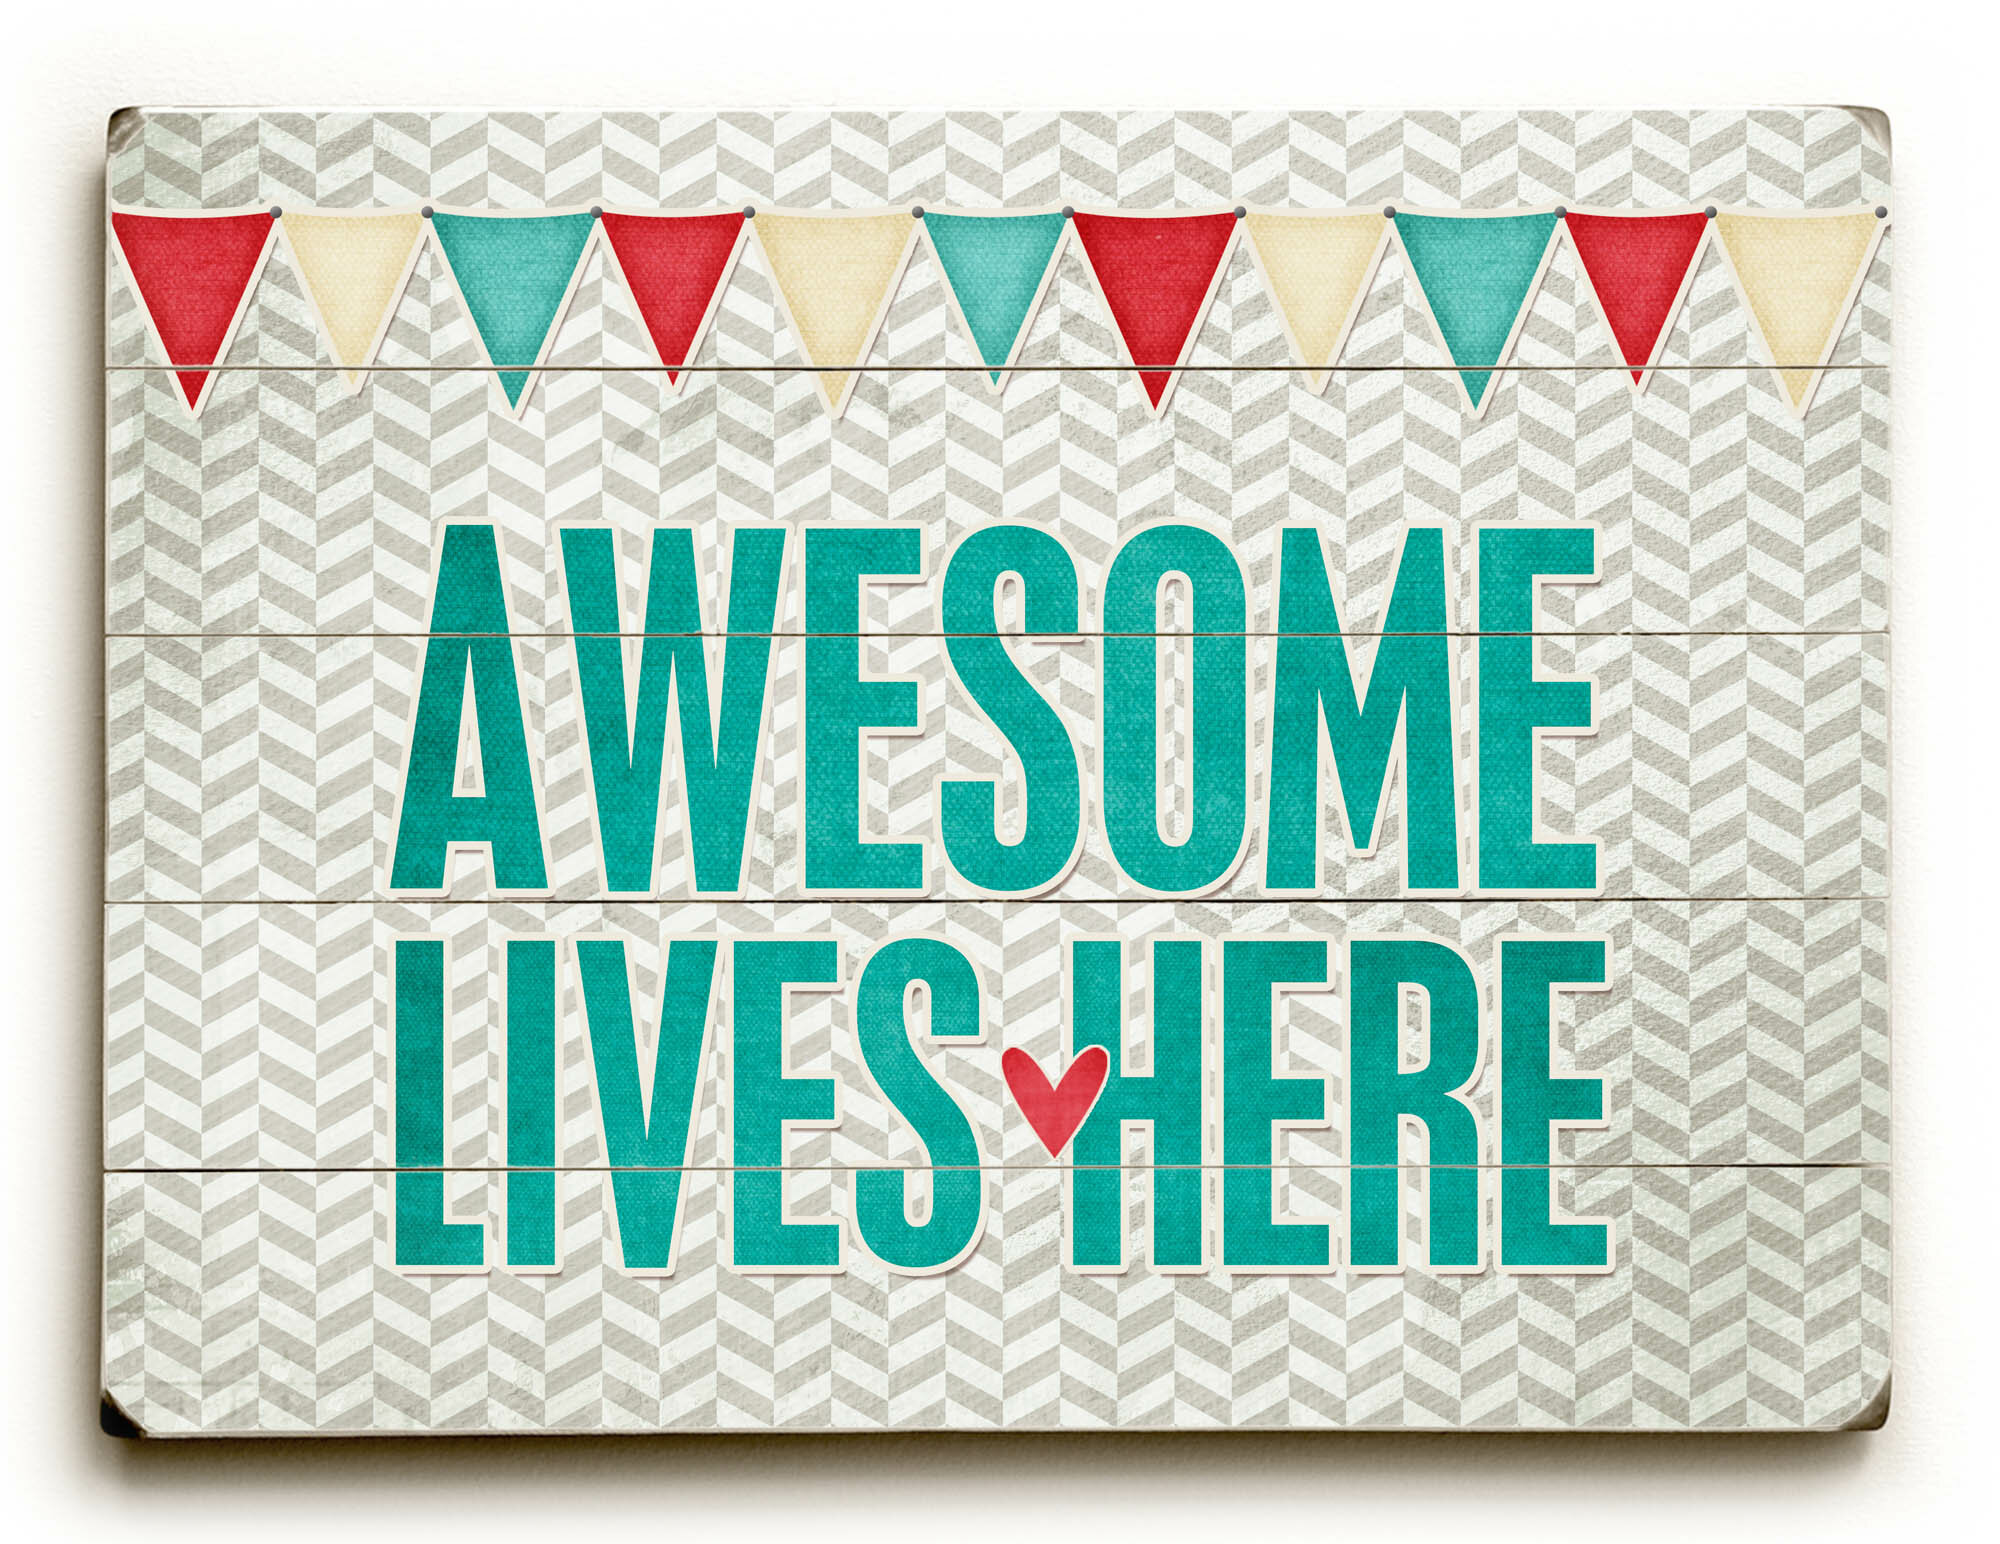 Artehouse Llc Awesome Live Here By Cheryl Overton Textual Art Plaque Wayfair